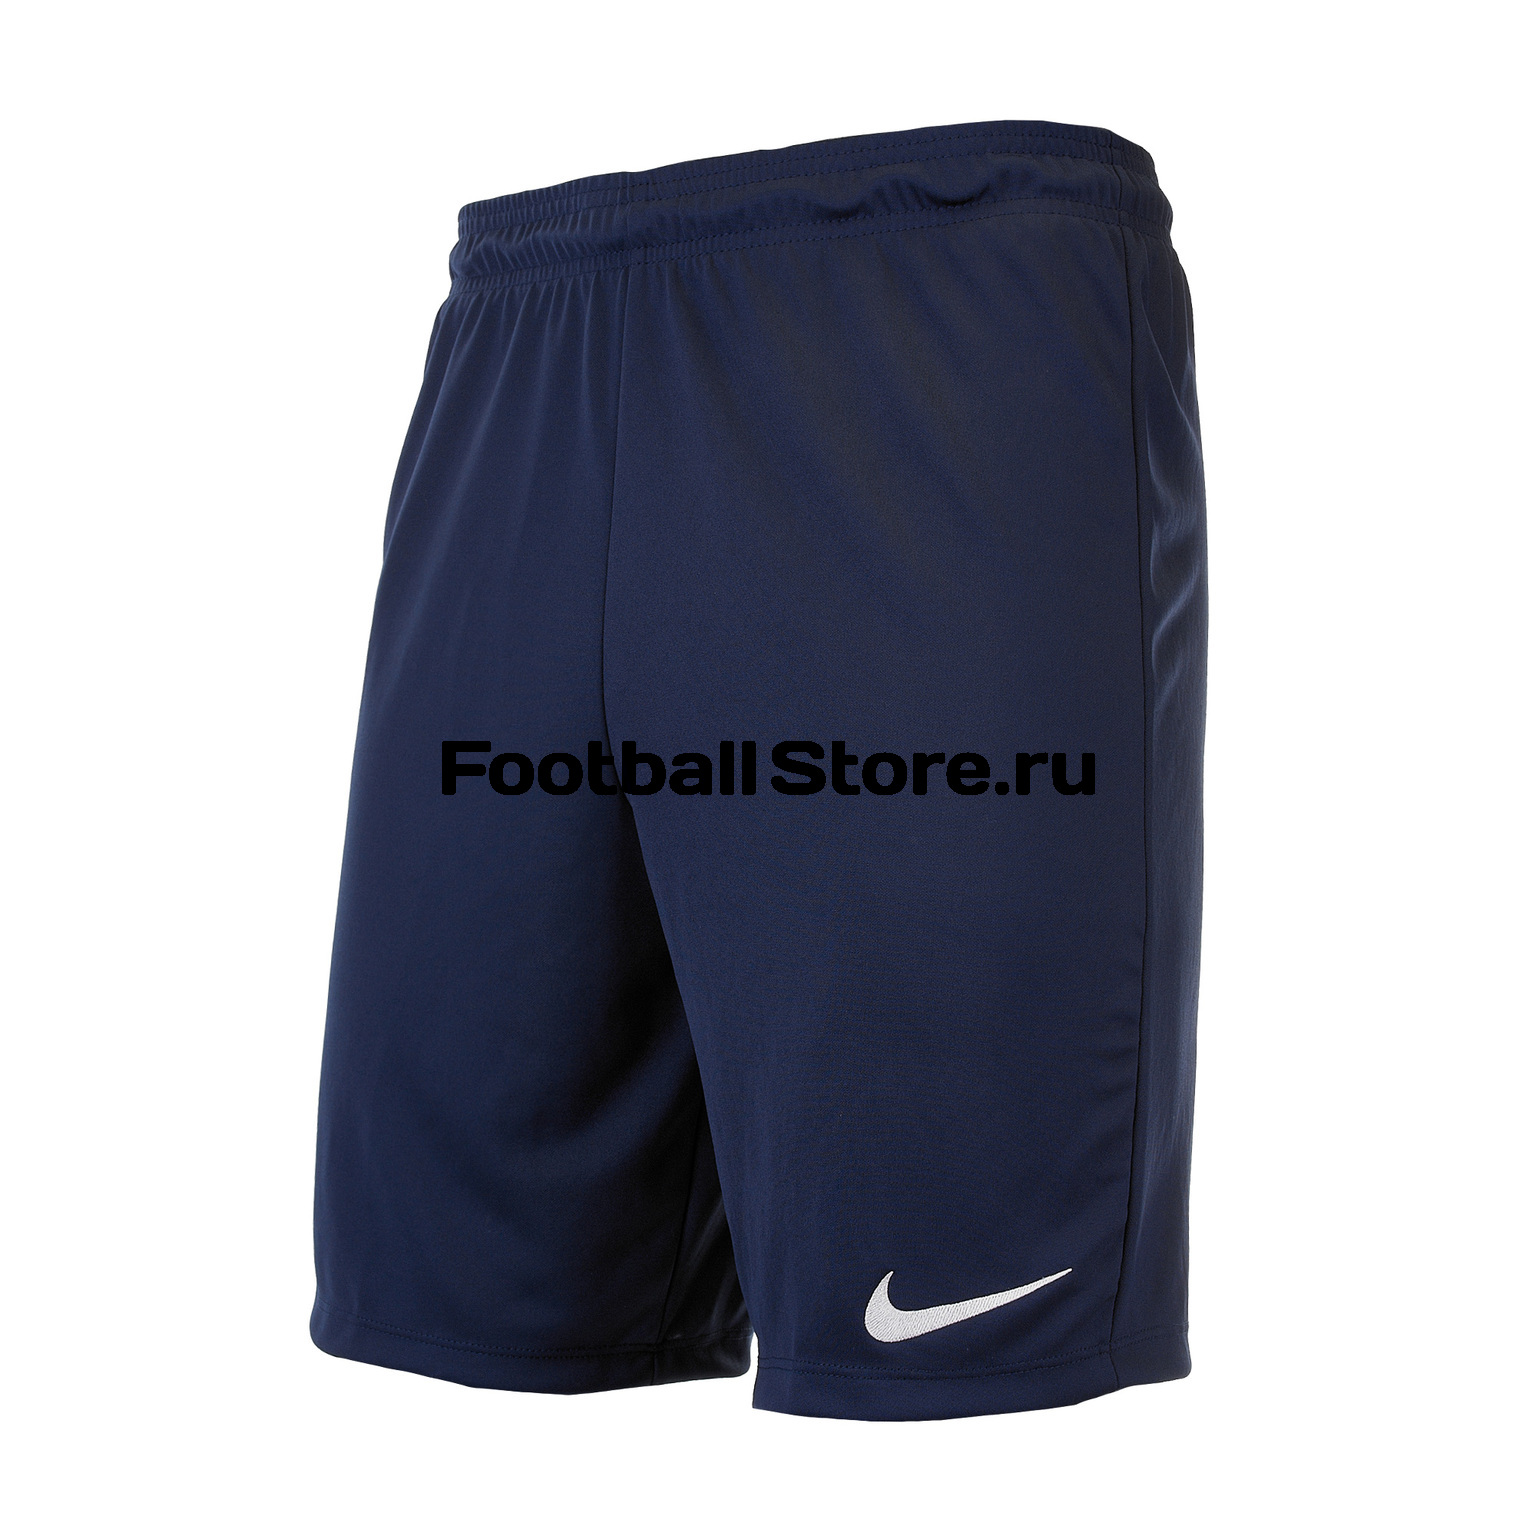 Шорты Nike Park II KNIT Short NB 725887-410 шорты nike park knit short wb 448222 739